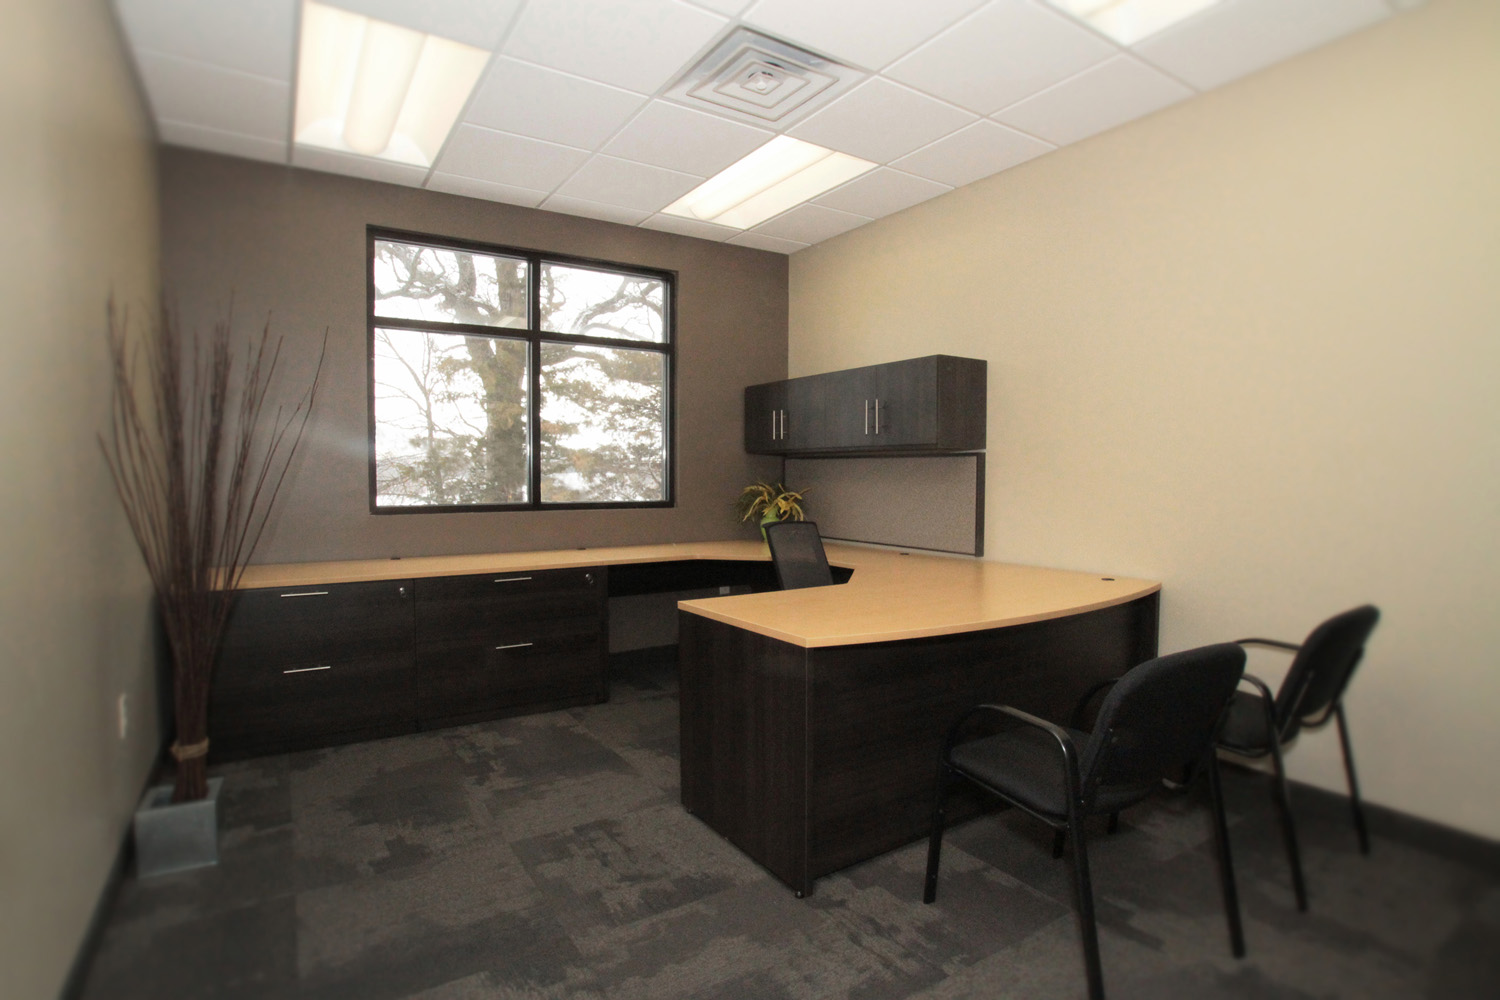 Office space design mankato new used office furnishings mankato Home office design color ideas